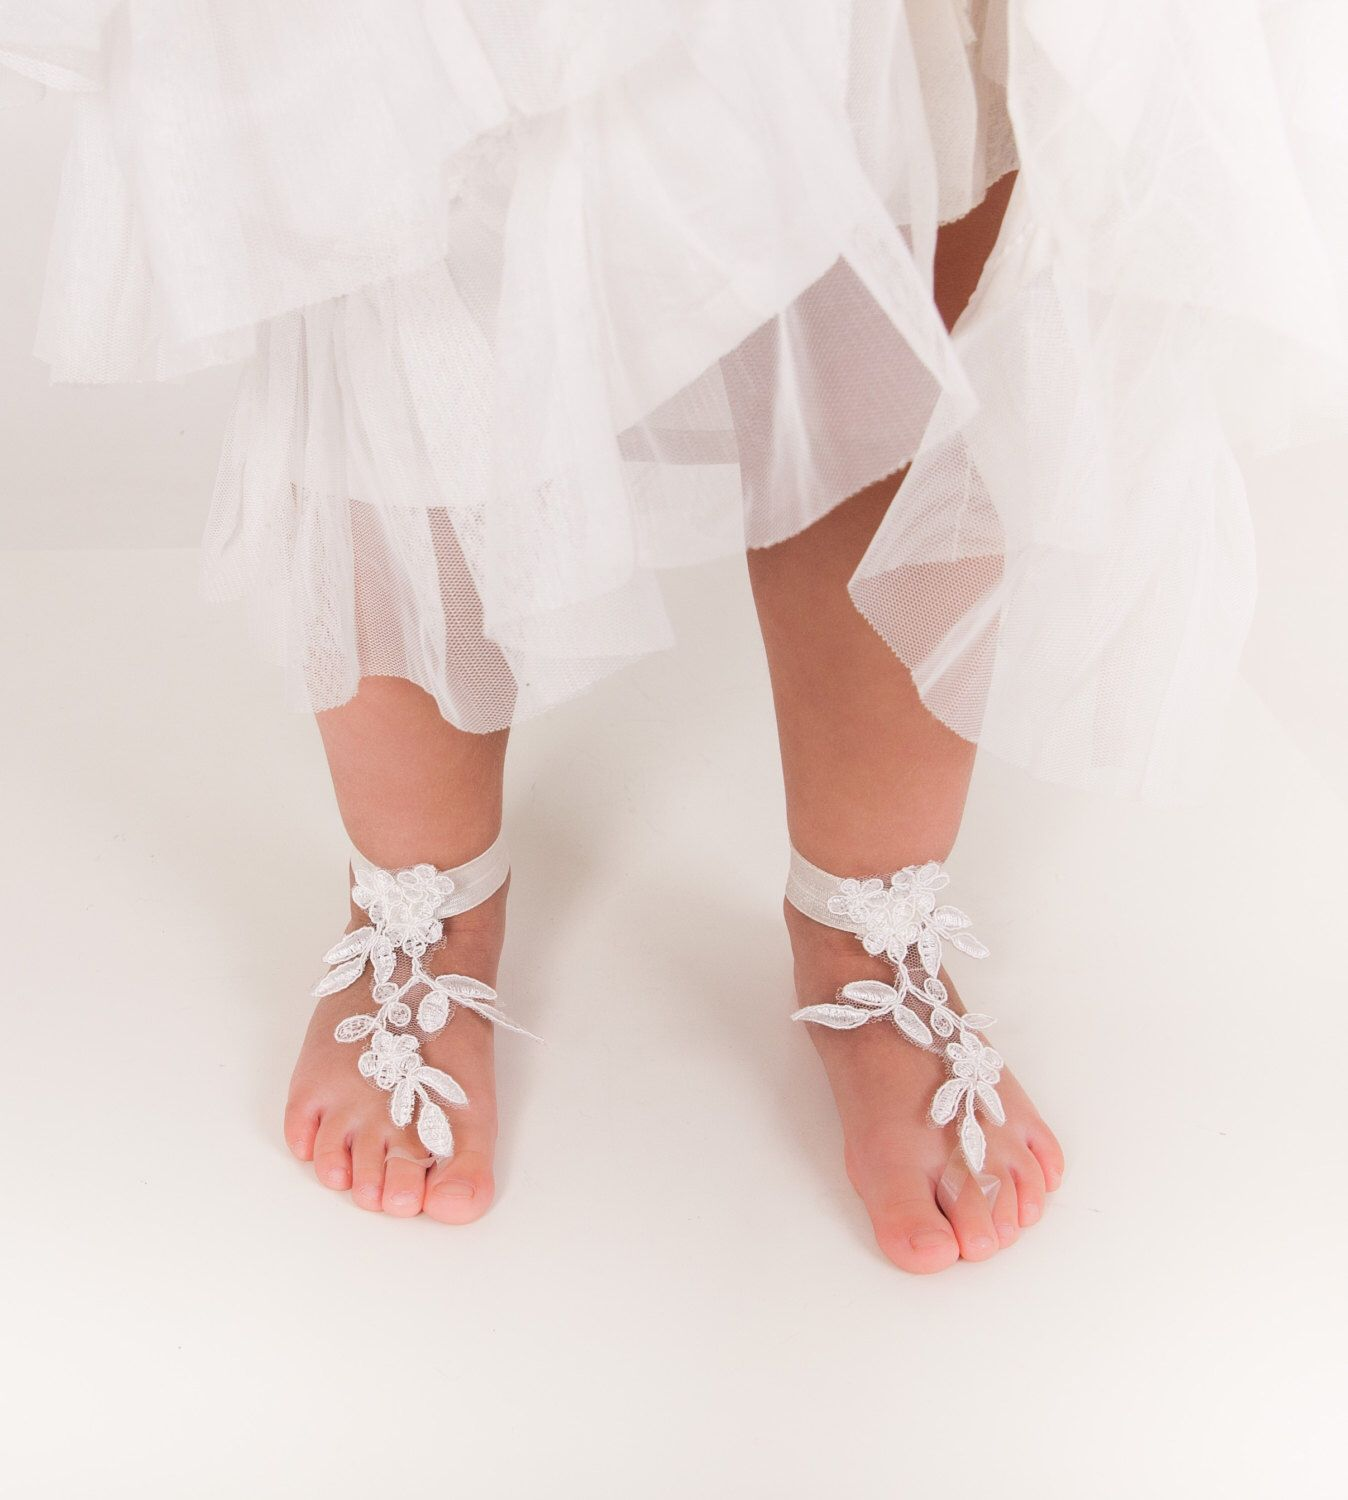 Baby Lace barefoot sandals Toddler footless sandals Kids shoes